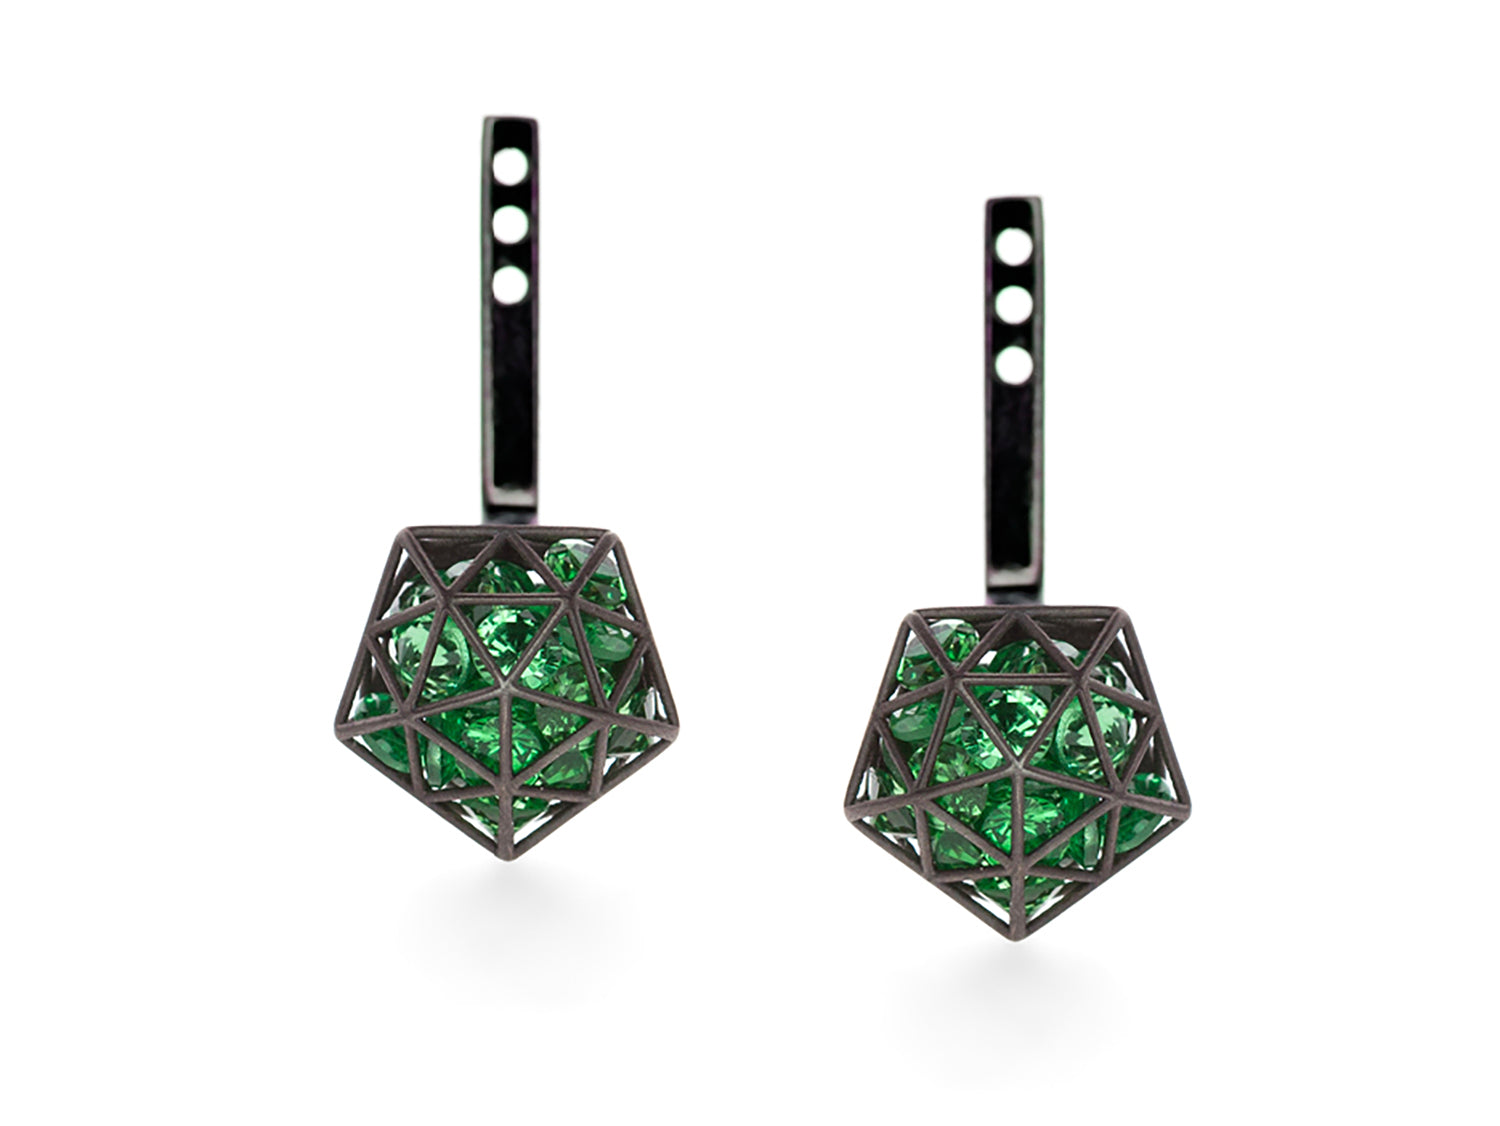 Floating Tsavorite Garnet Pentagon Adjustable Ear Jackets